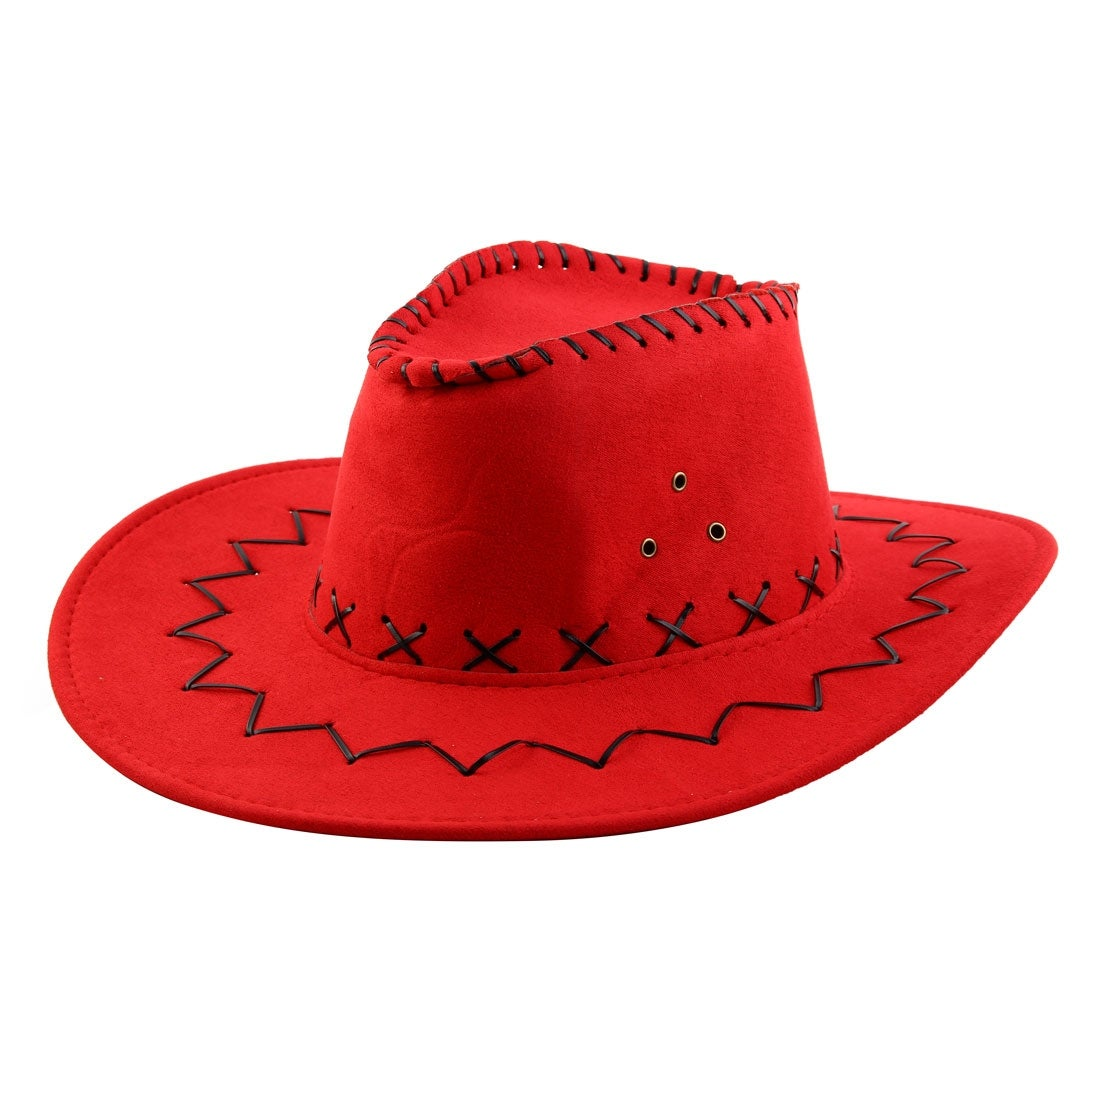 Shop Faux Suede Adjustable Neck Strap Wide Brim Western Style Sunhat Cowboy Hat  Red - Free Shipping On Orders Over  45 - Overstock.com - 18463787 529e6eca8293